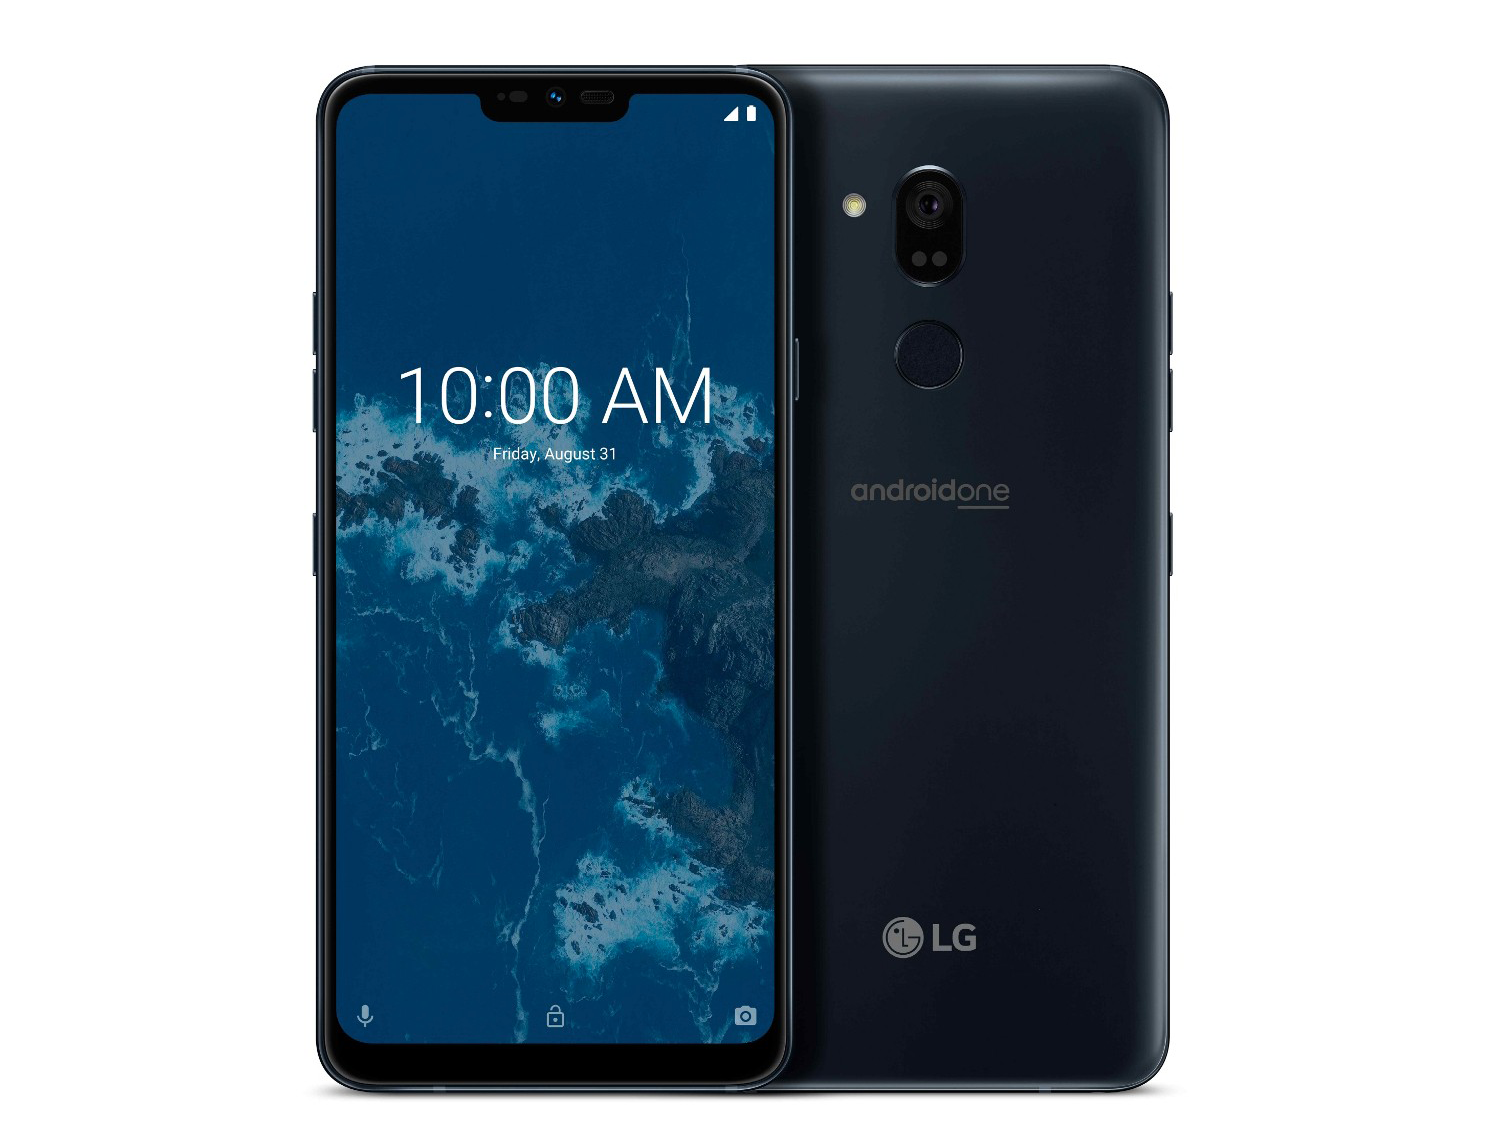 LG Announces Its First Android One Smartphone - LG G7